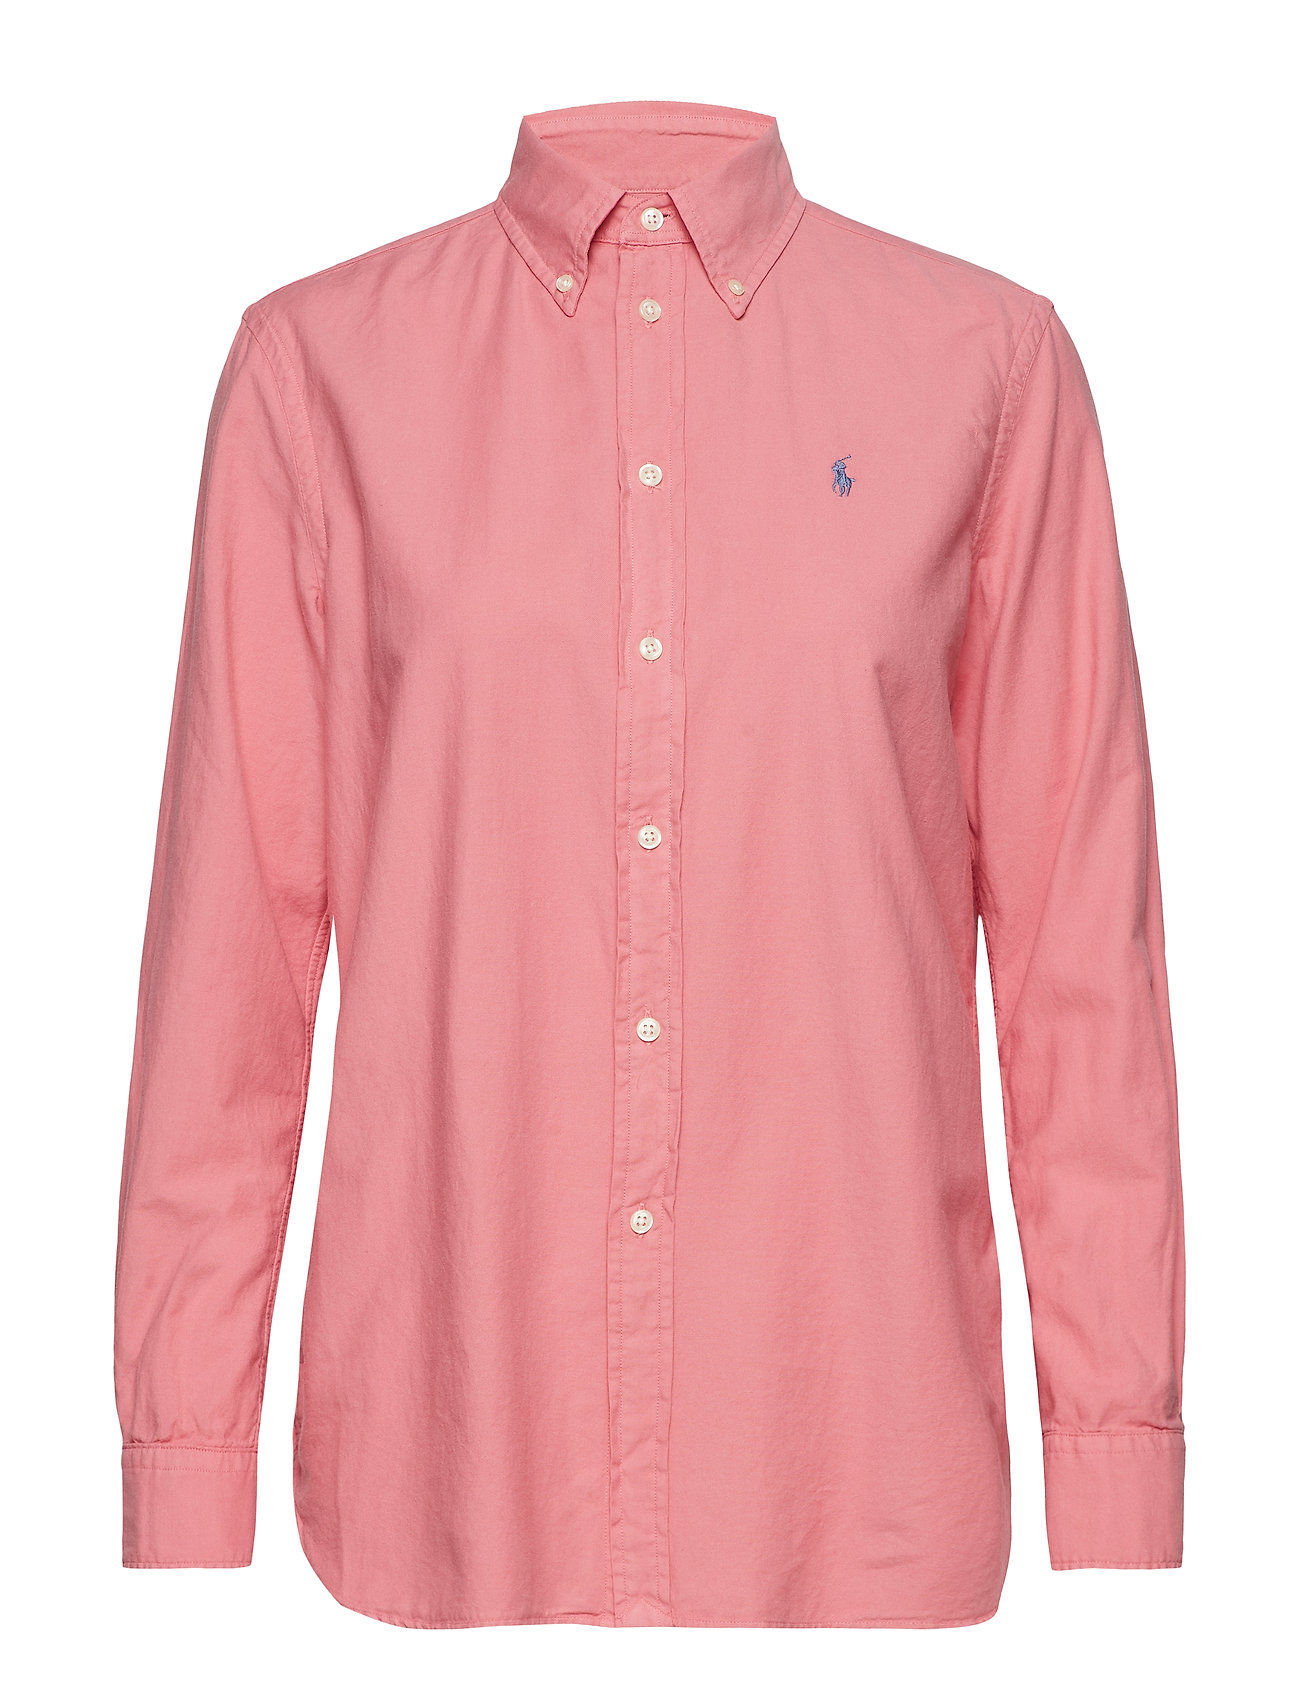 Lauren Relaxed BerryPolo Fit Ralph Shirtadirondack Oxford 2HEID9